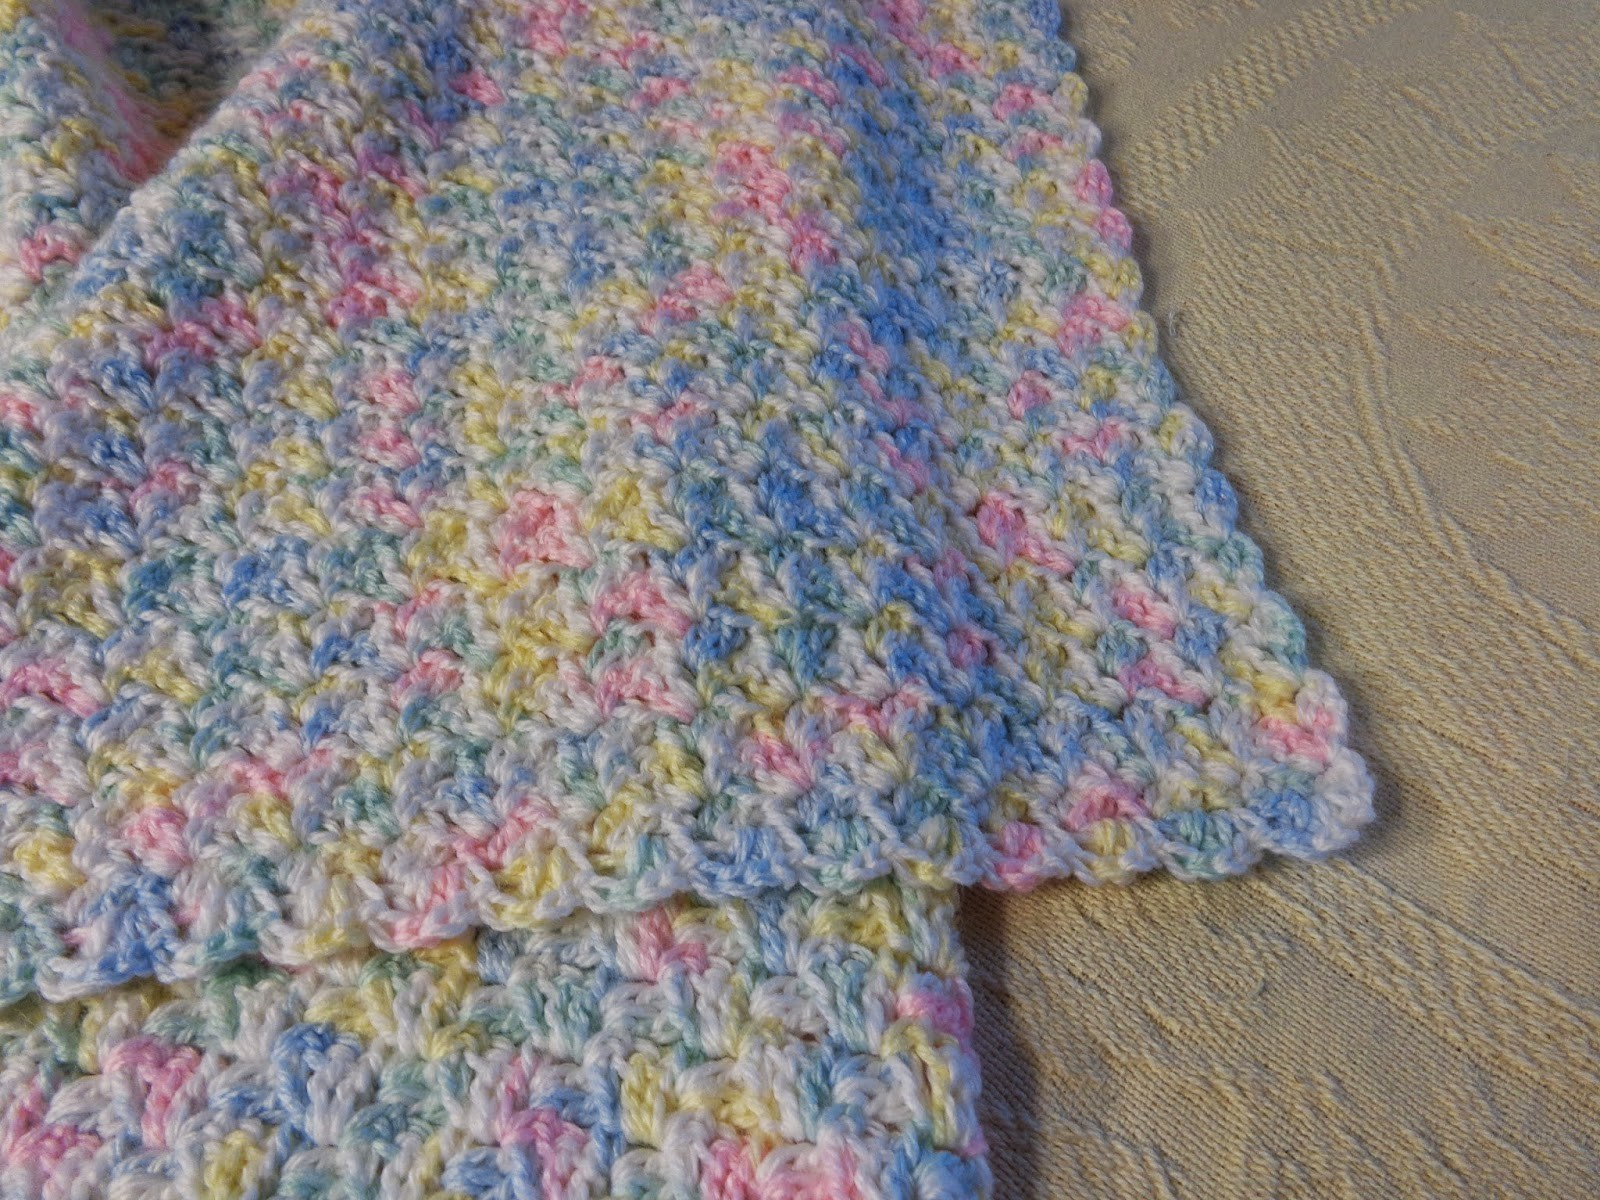 Variegated Yarn Patterns Knitting Topic For Crochet Ba Blanket Patterns With Variegated Yarn